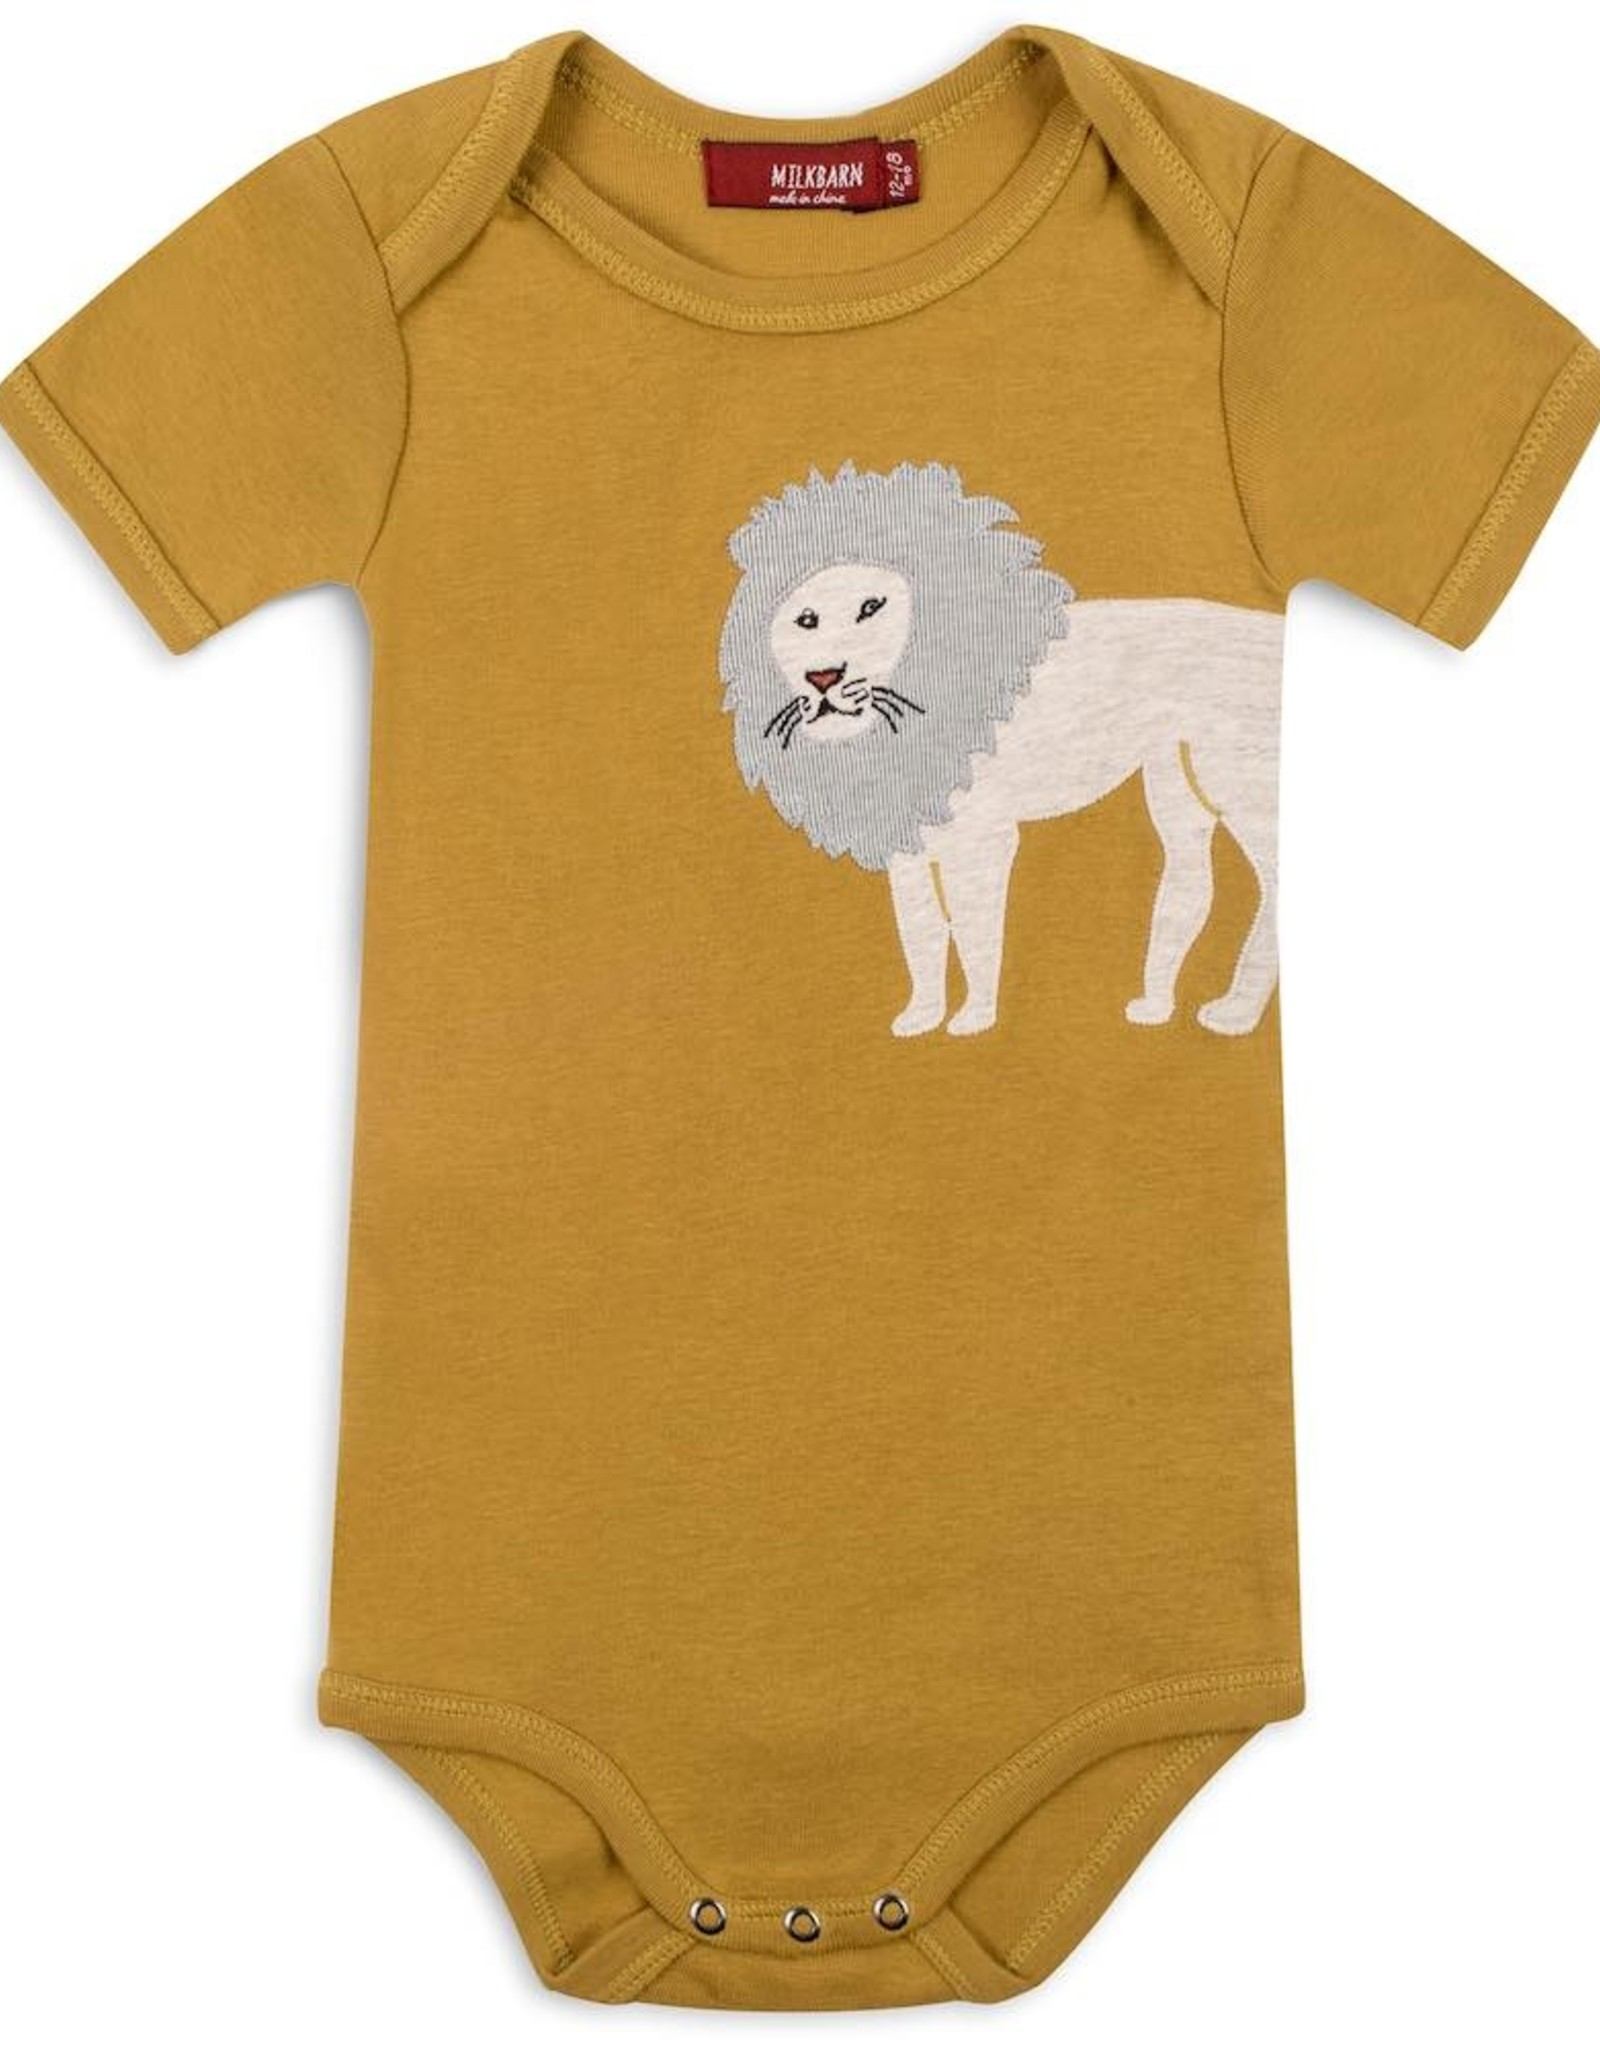 Milkbarn Applique Onesie - Lion